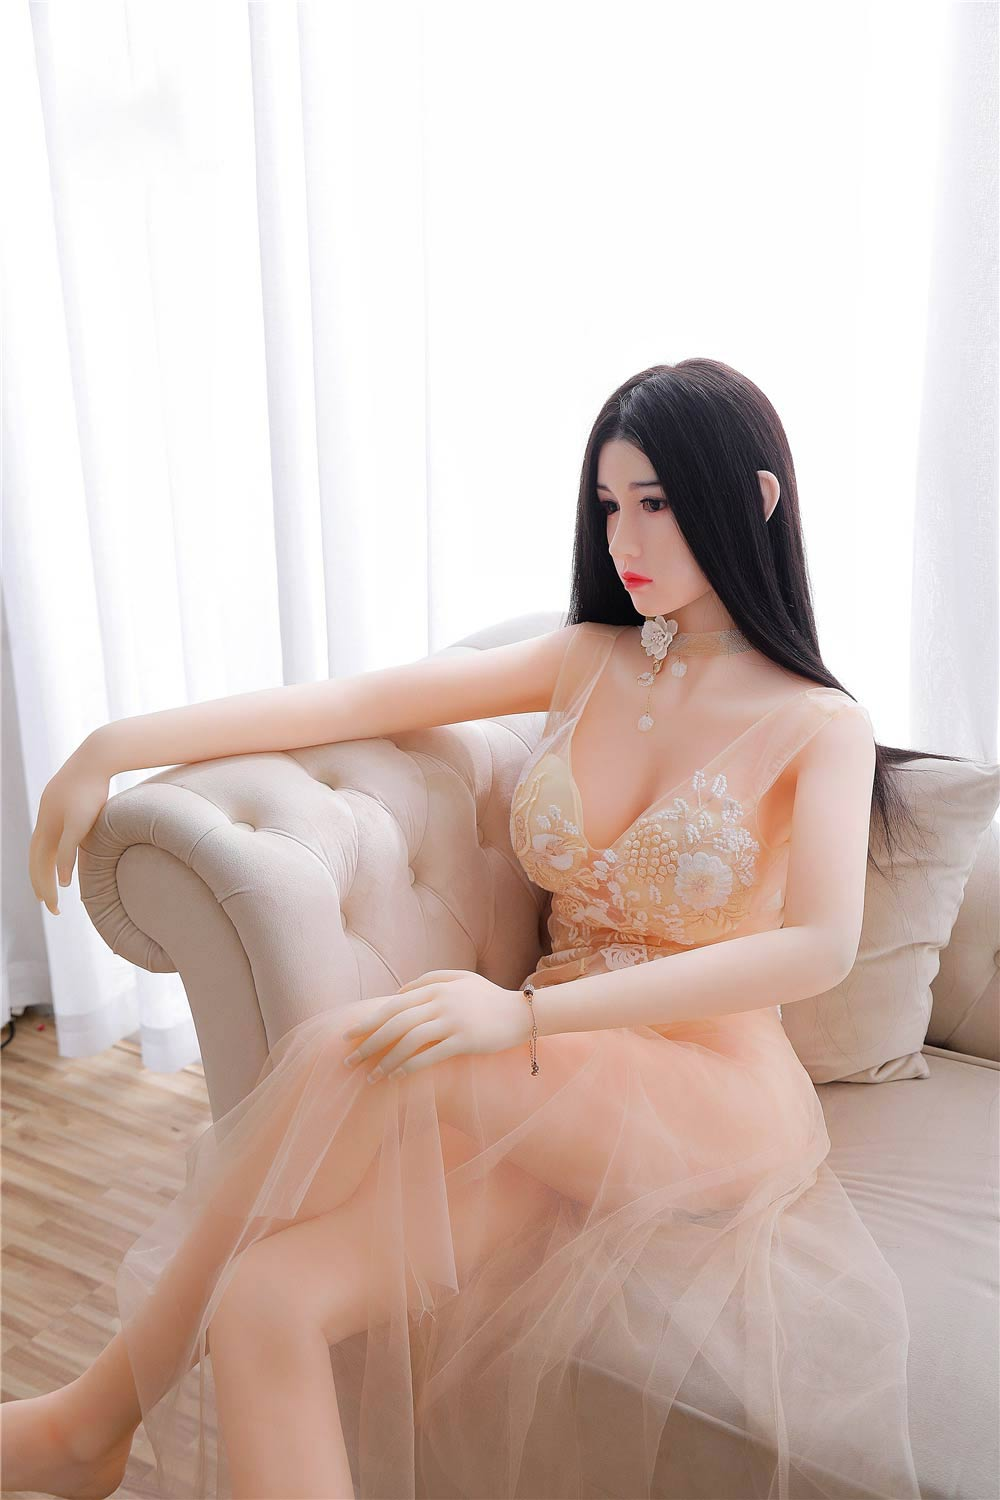 silicone-sex-doll-wearing-a-skirt